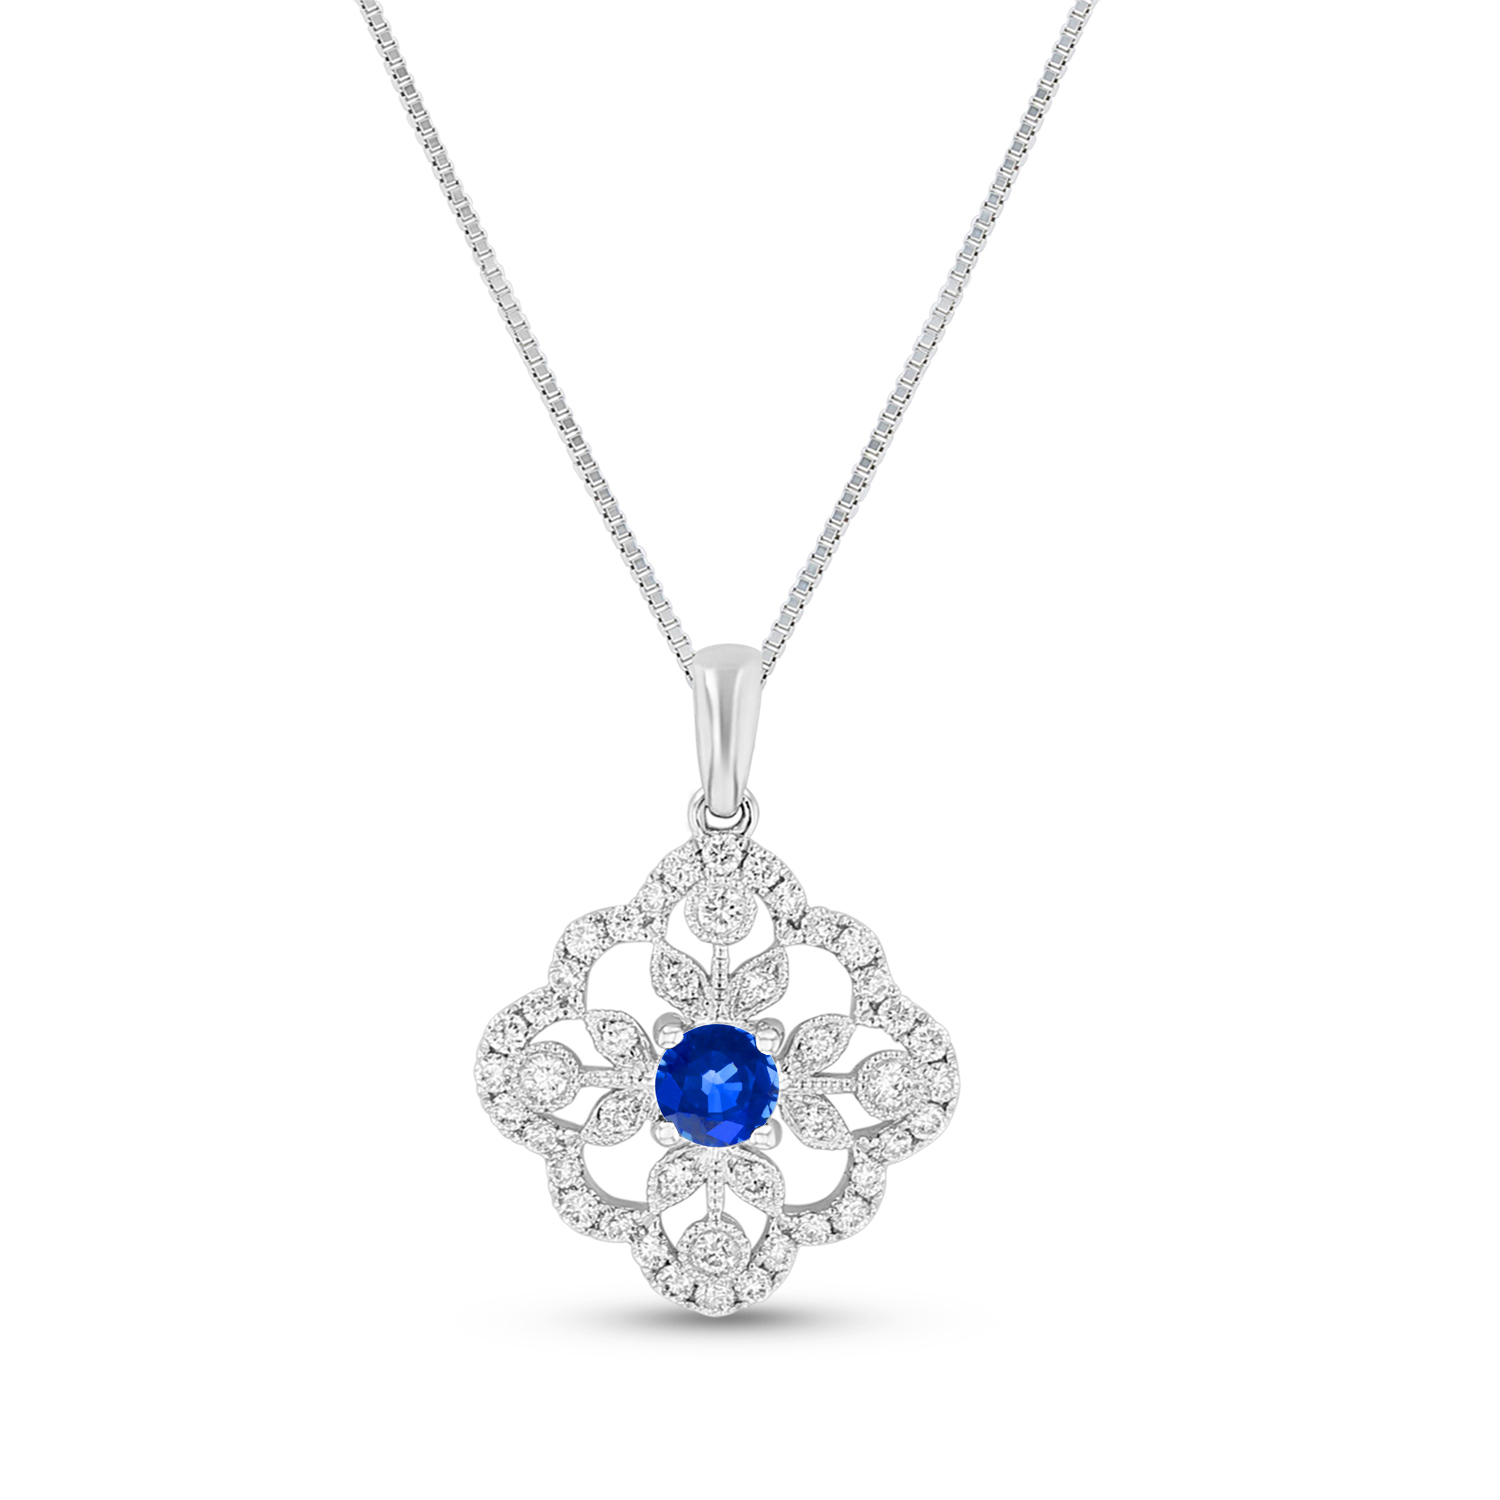 View Diamond and sapphire Pendant in 14k White gold